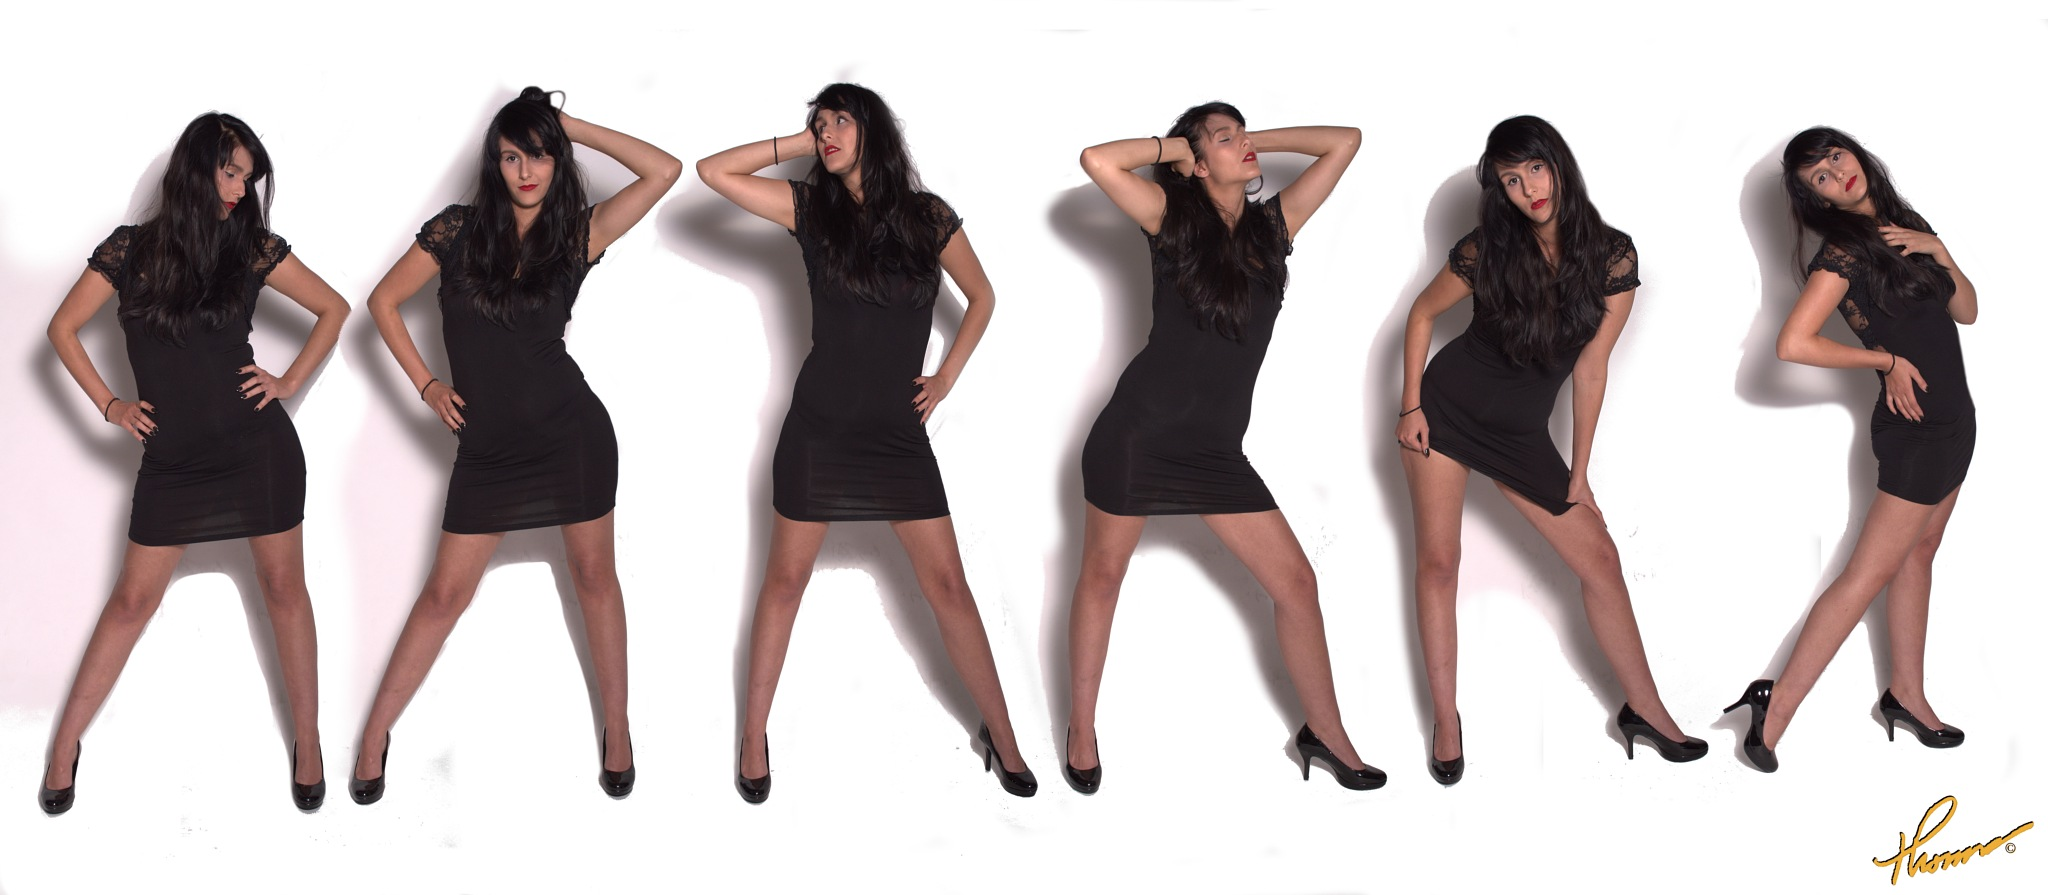 Multi Image Little Black Dress Photography by Thomas H Black Photography by Shameron Nicole Model